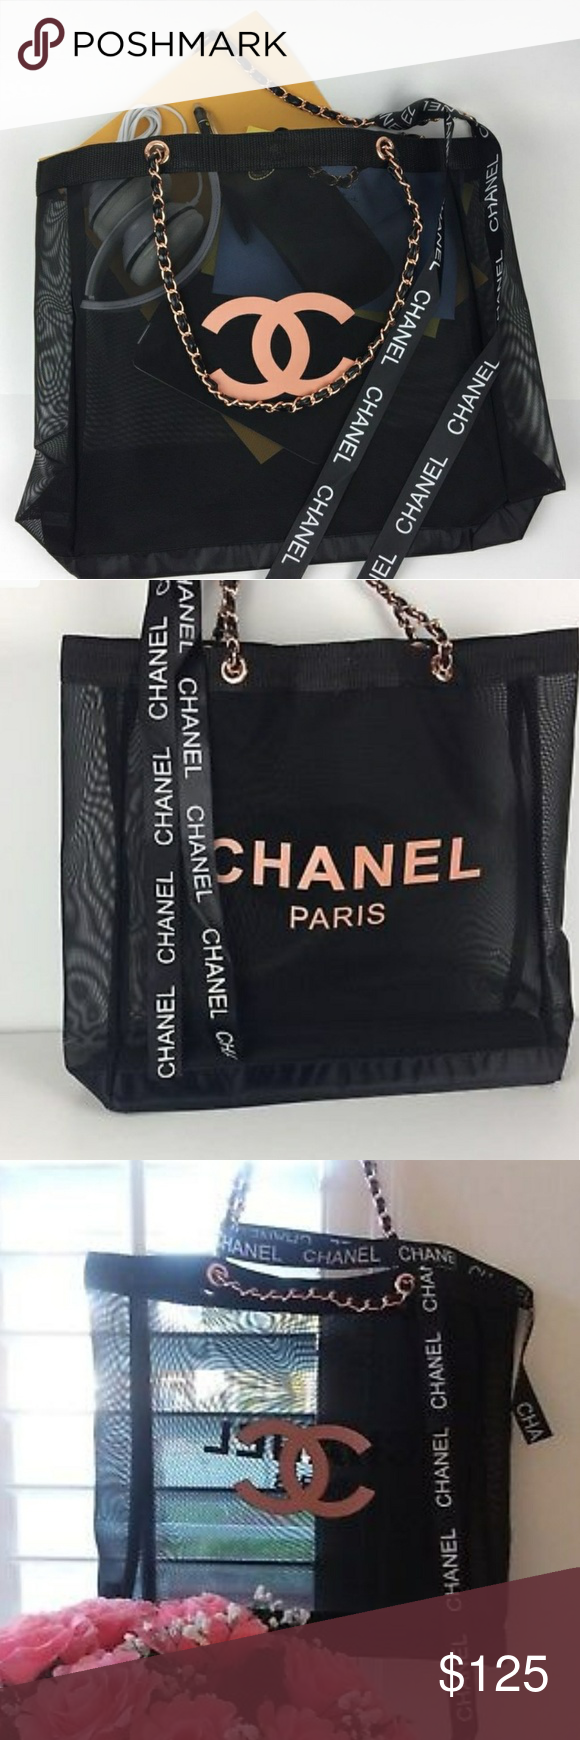 ed941f5234c562 Chanel vip rose gold mesh shopping tote Brand New 100% Authentic Chanel VIP  Gift Black